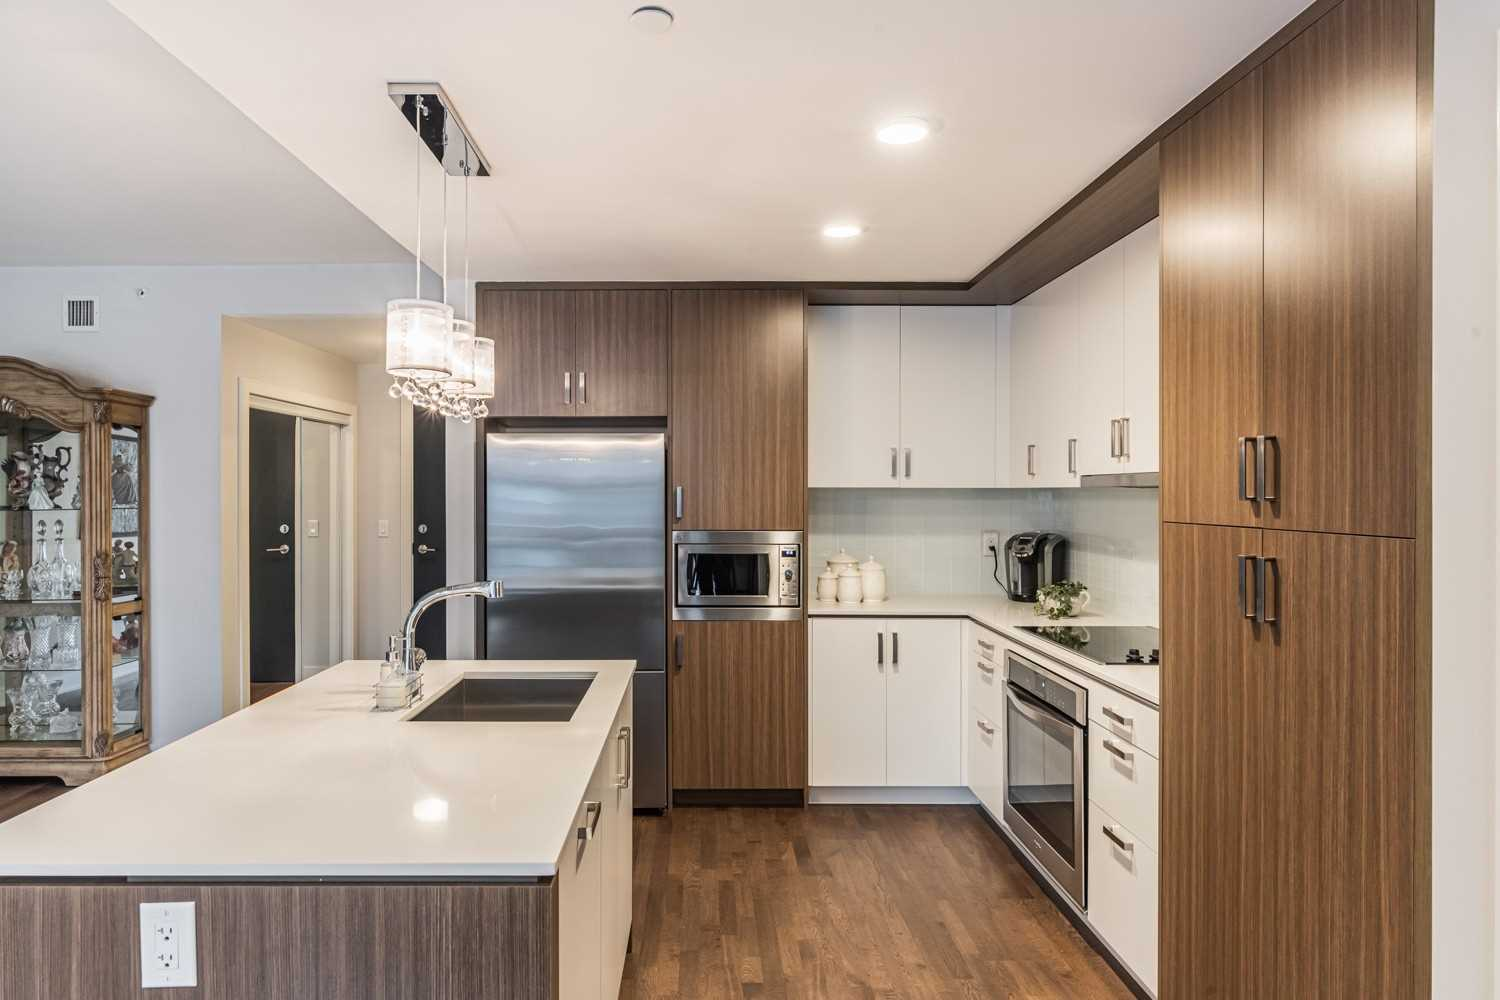 #366 - 1575 Lakeshore Rd W, Mississauga W4671089